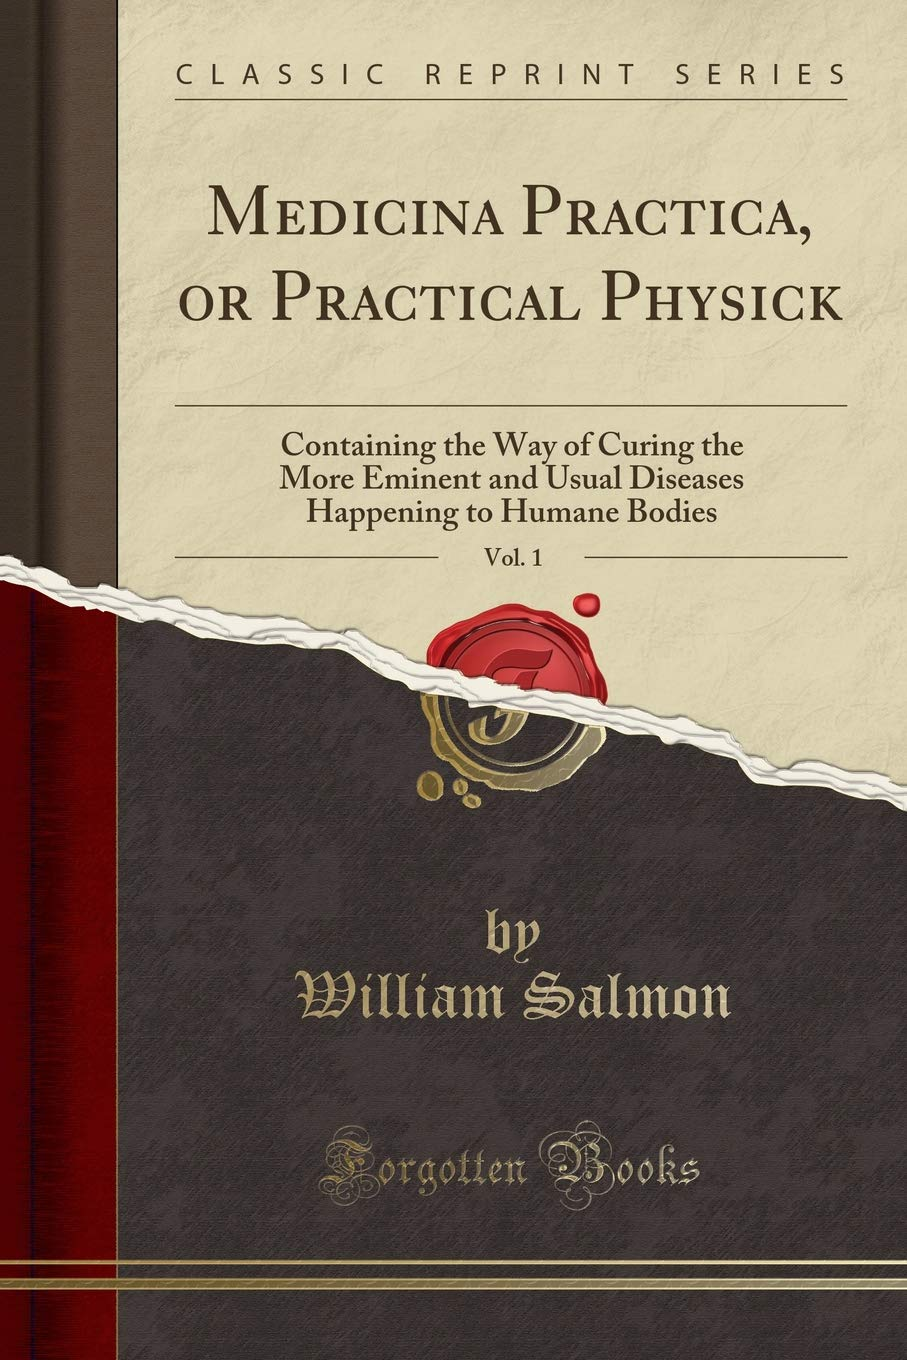 Read Online Medicina Practica, or Practical Physick, Vol. 1: Containing the Way of Curing the More Eminent and Usual Diseases Happening to Humane Bodies (Classic Reprint) pdf